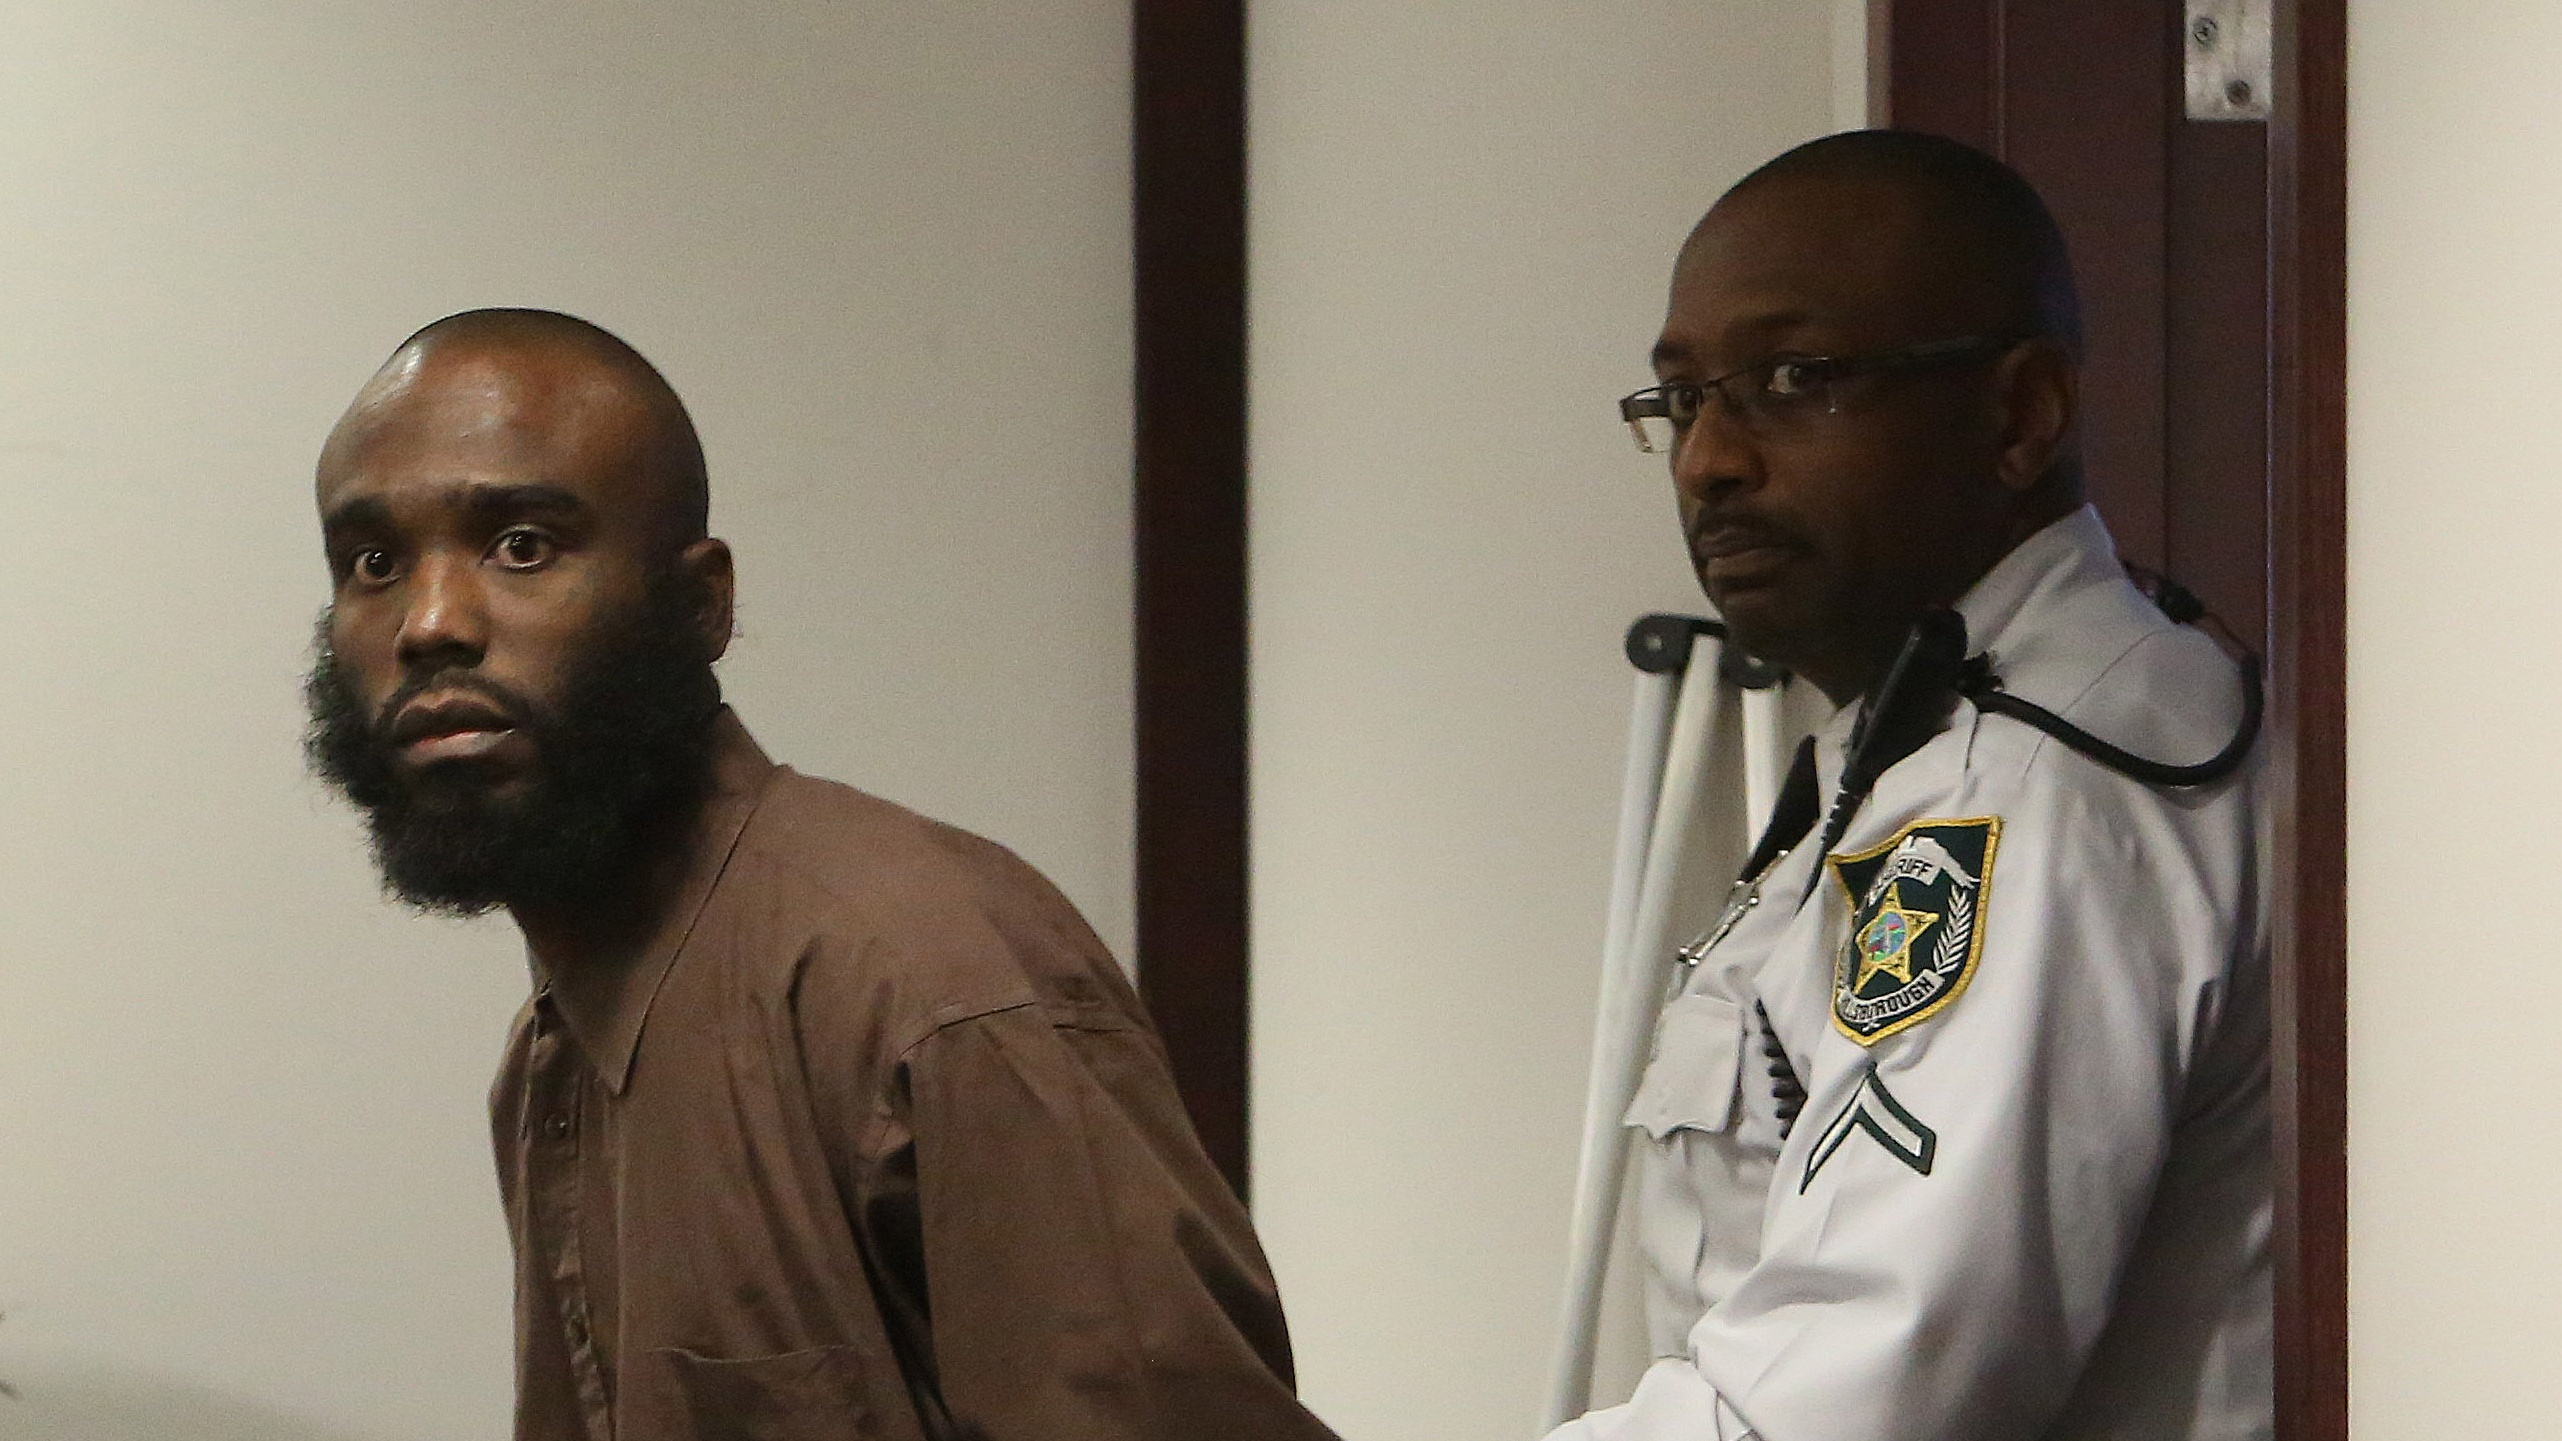 Condemned to death, Tampa cop killer returns to court